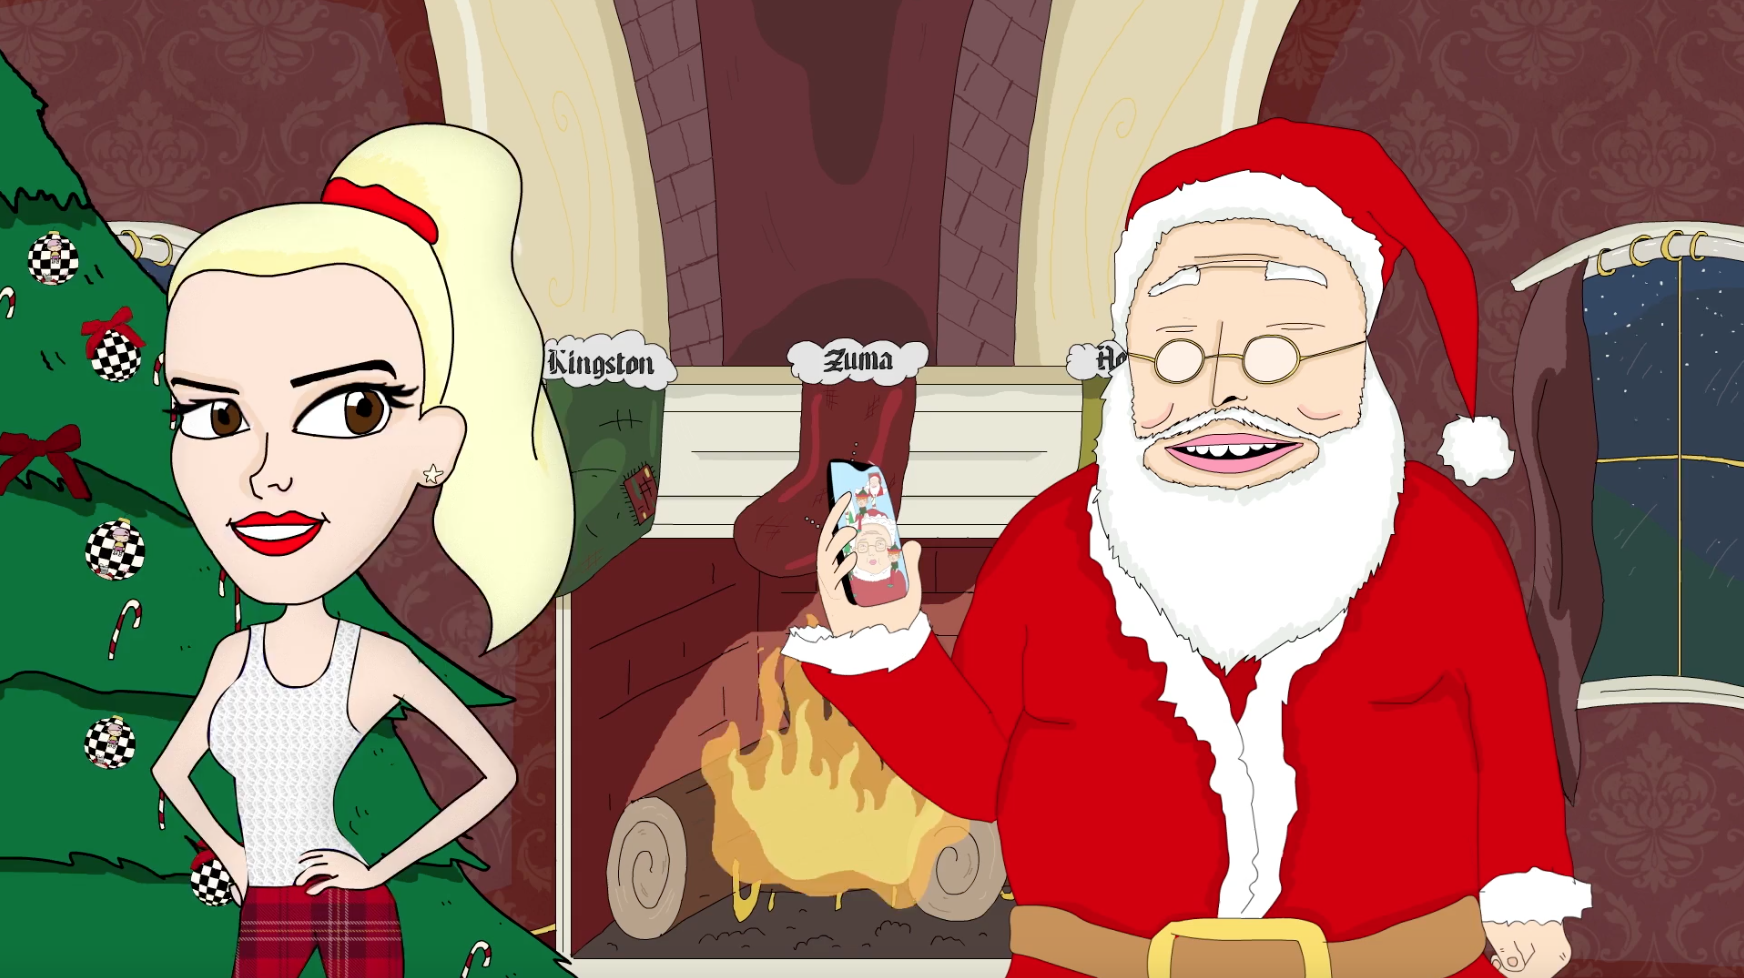 Gwen Stefani and Santa Animation Still Frame